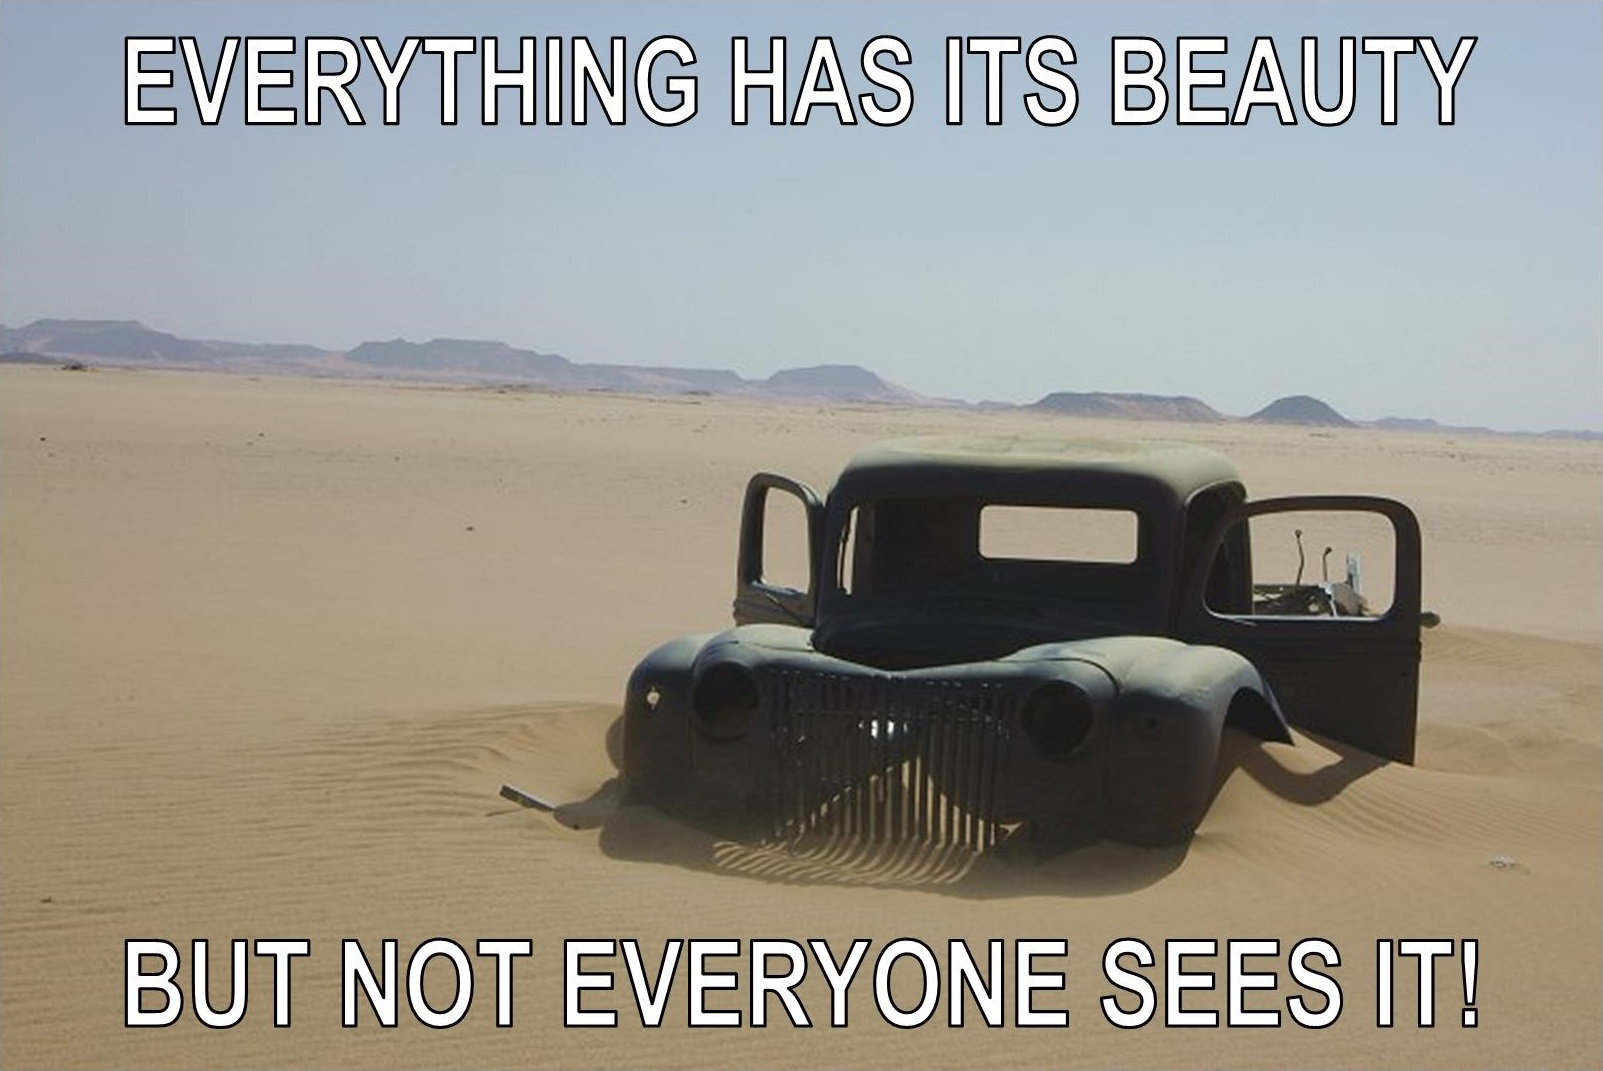 Everything has its beauty - but not everyone sees it!